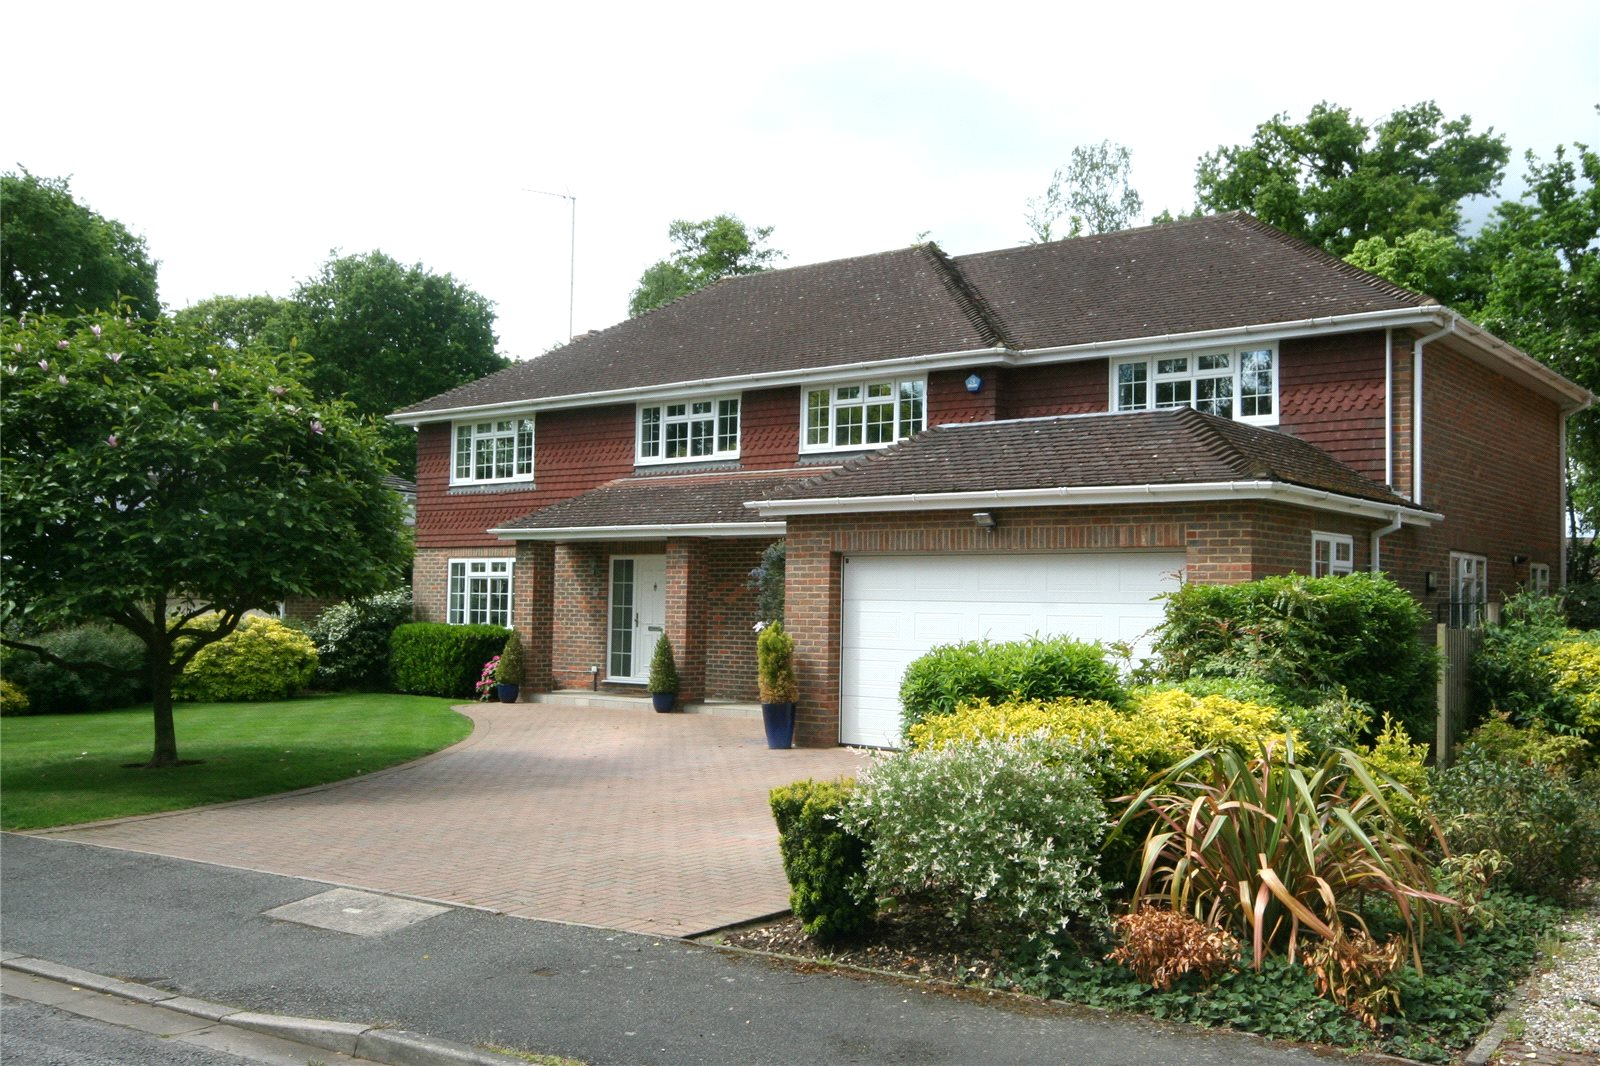 Частный дом для того Продажа на St Huberts Close, Gerrards Cross, Buckinghamshire, SL9 Gerrards Cross, Англия